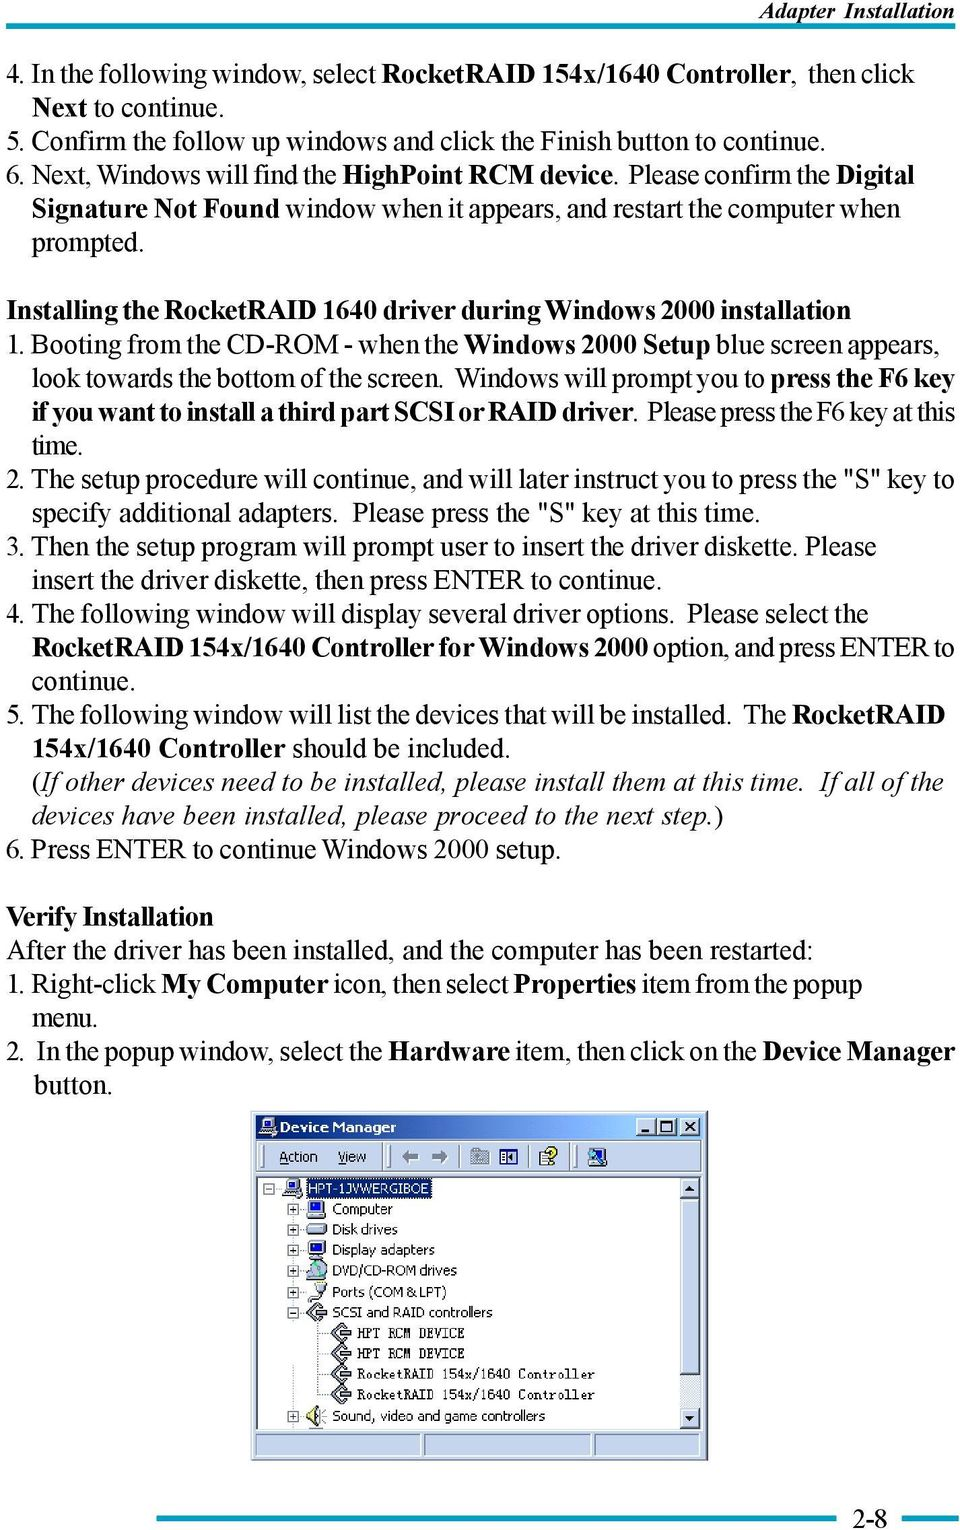 Installing the RocketRAID 1640 driver during Windows 2000 installation 1. Booting from the CD-ROM - when the Windows 2000 Setup blue screen appears, look towards the bottom of the screen.